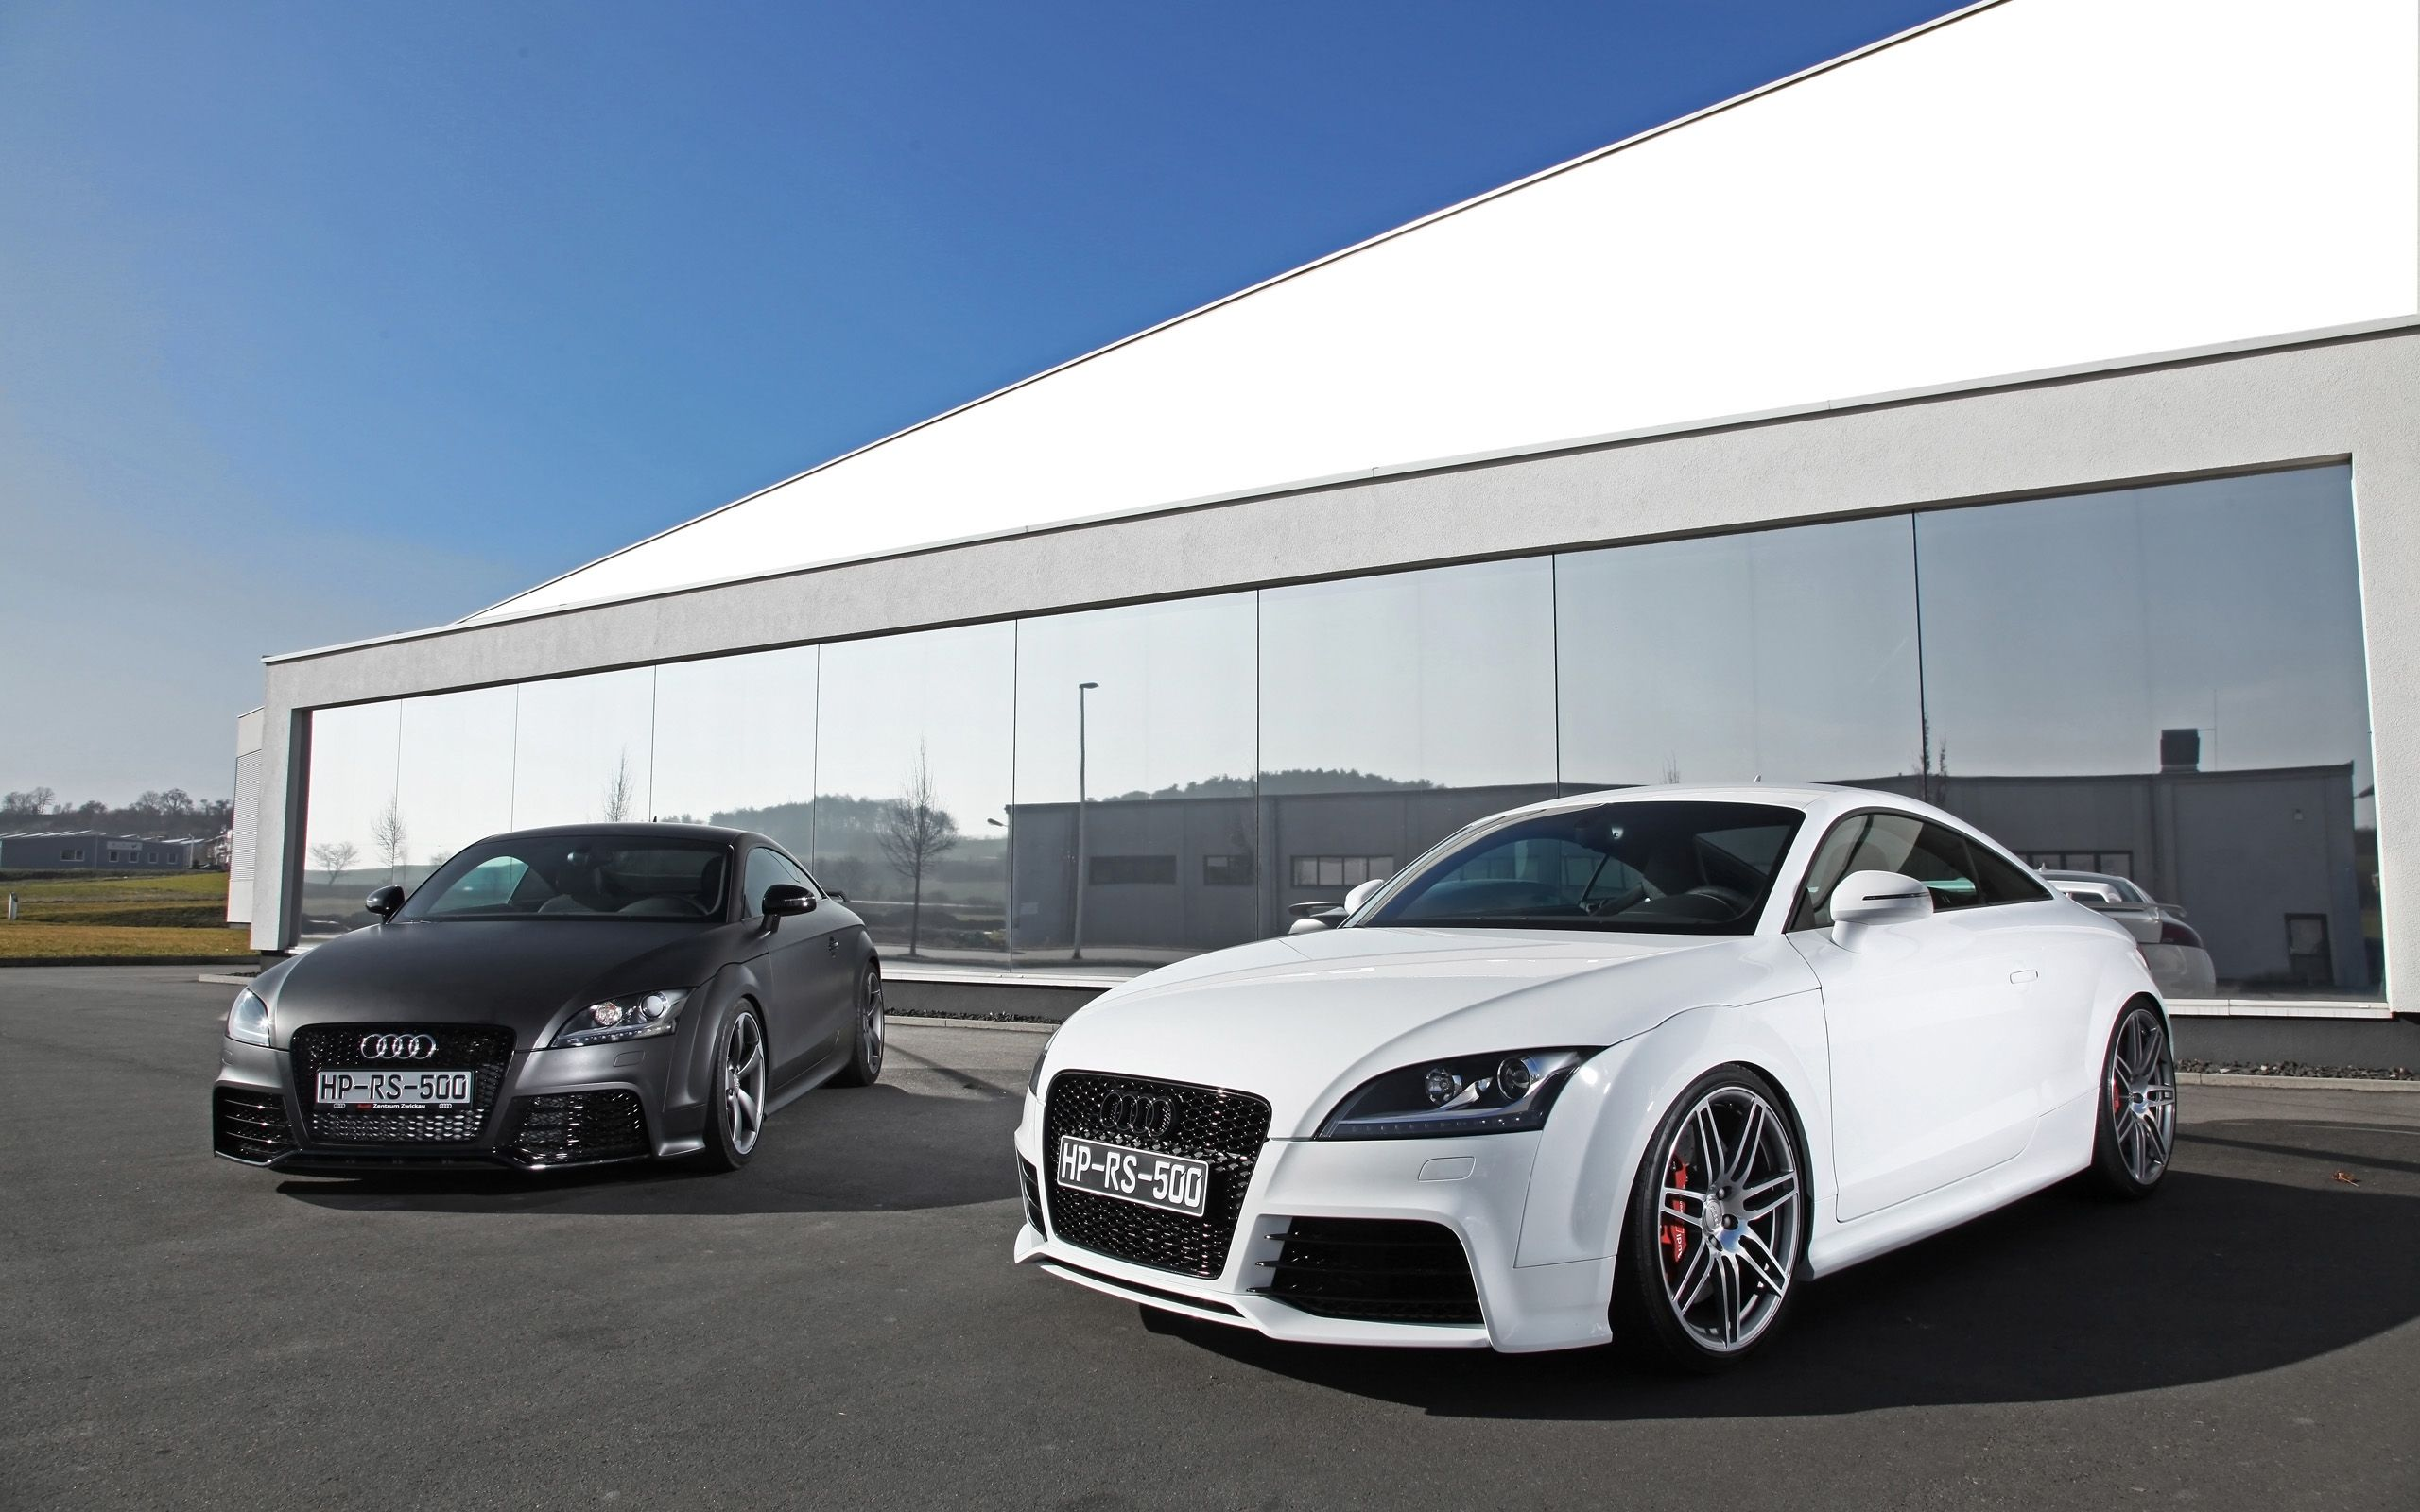 2014 HPerformance Audi TT RS Wallpapers